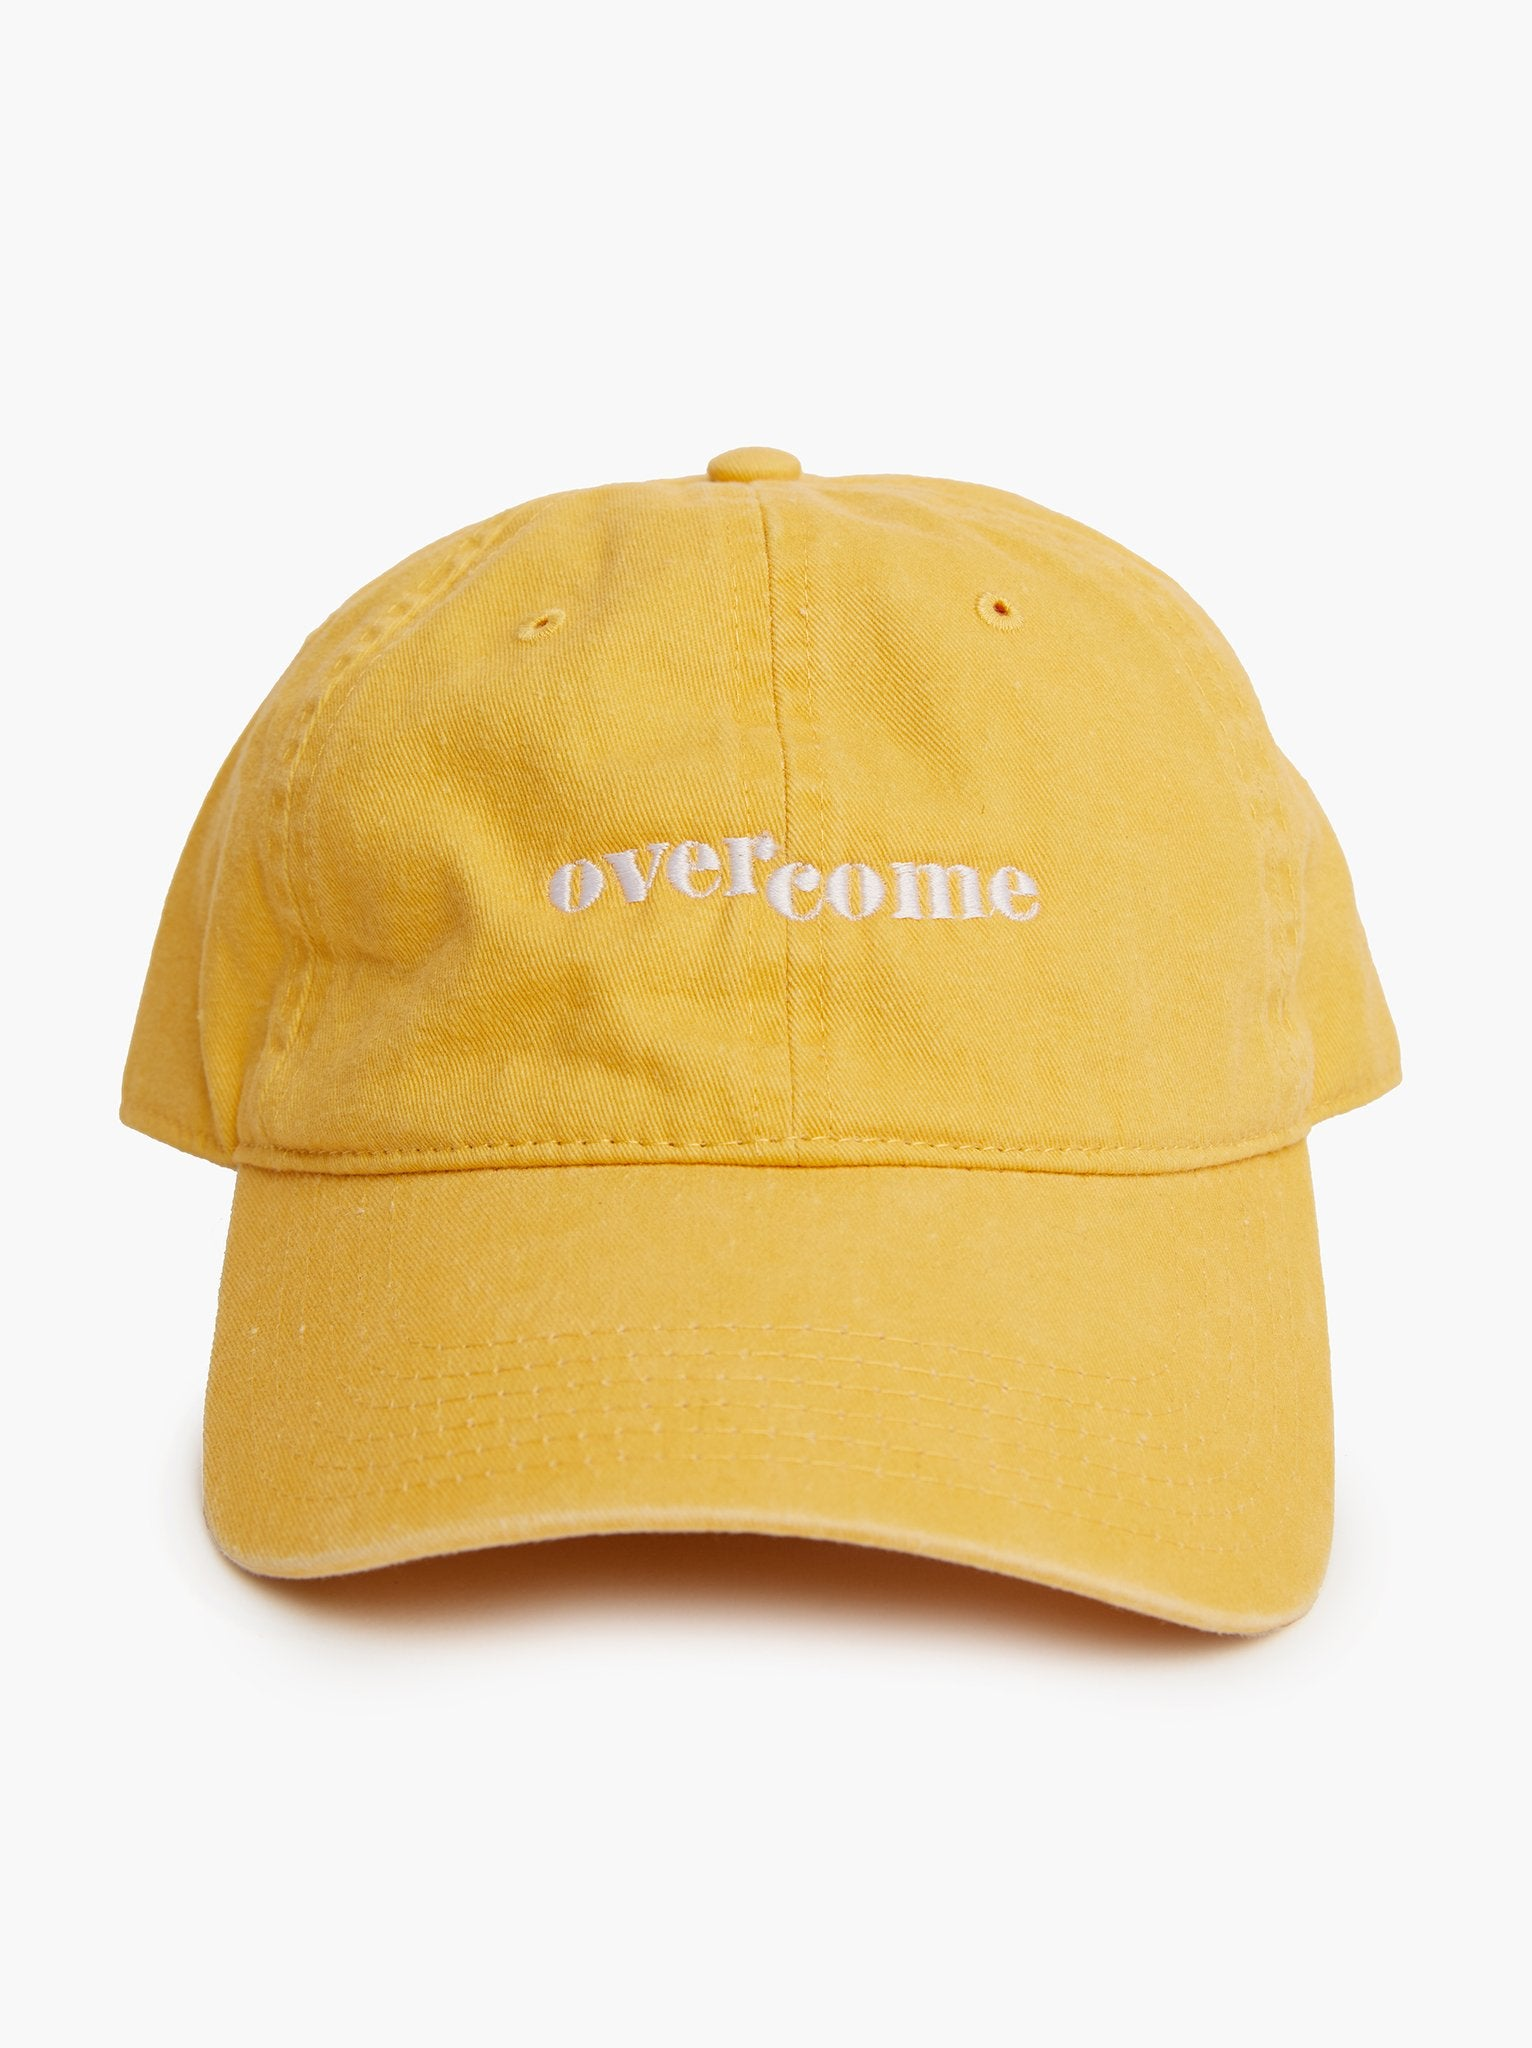 Community Collection Hat: Overcome